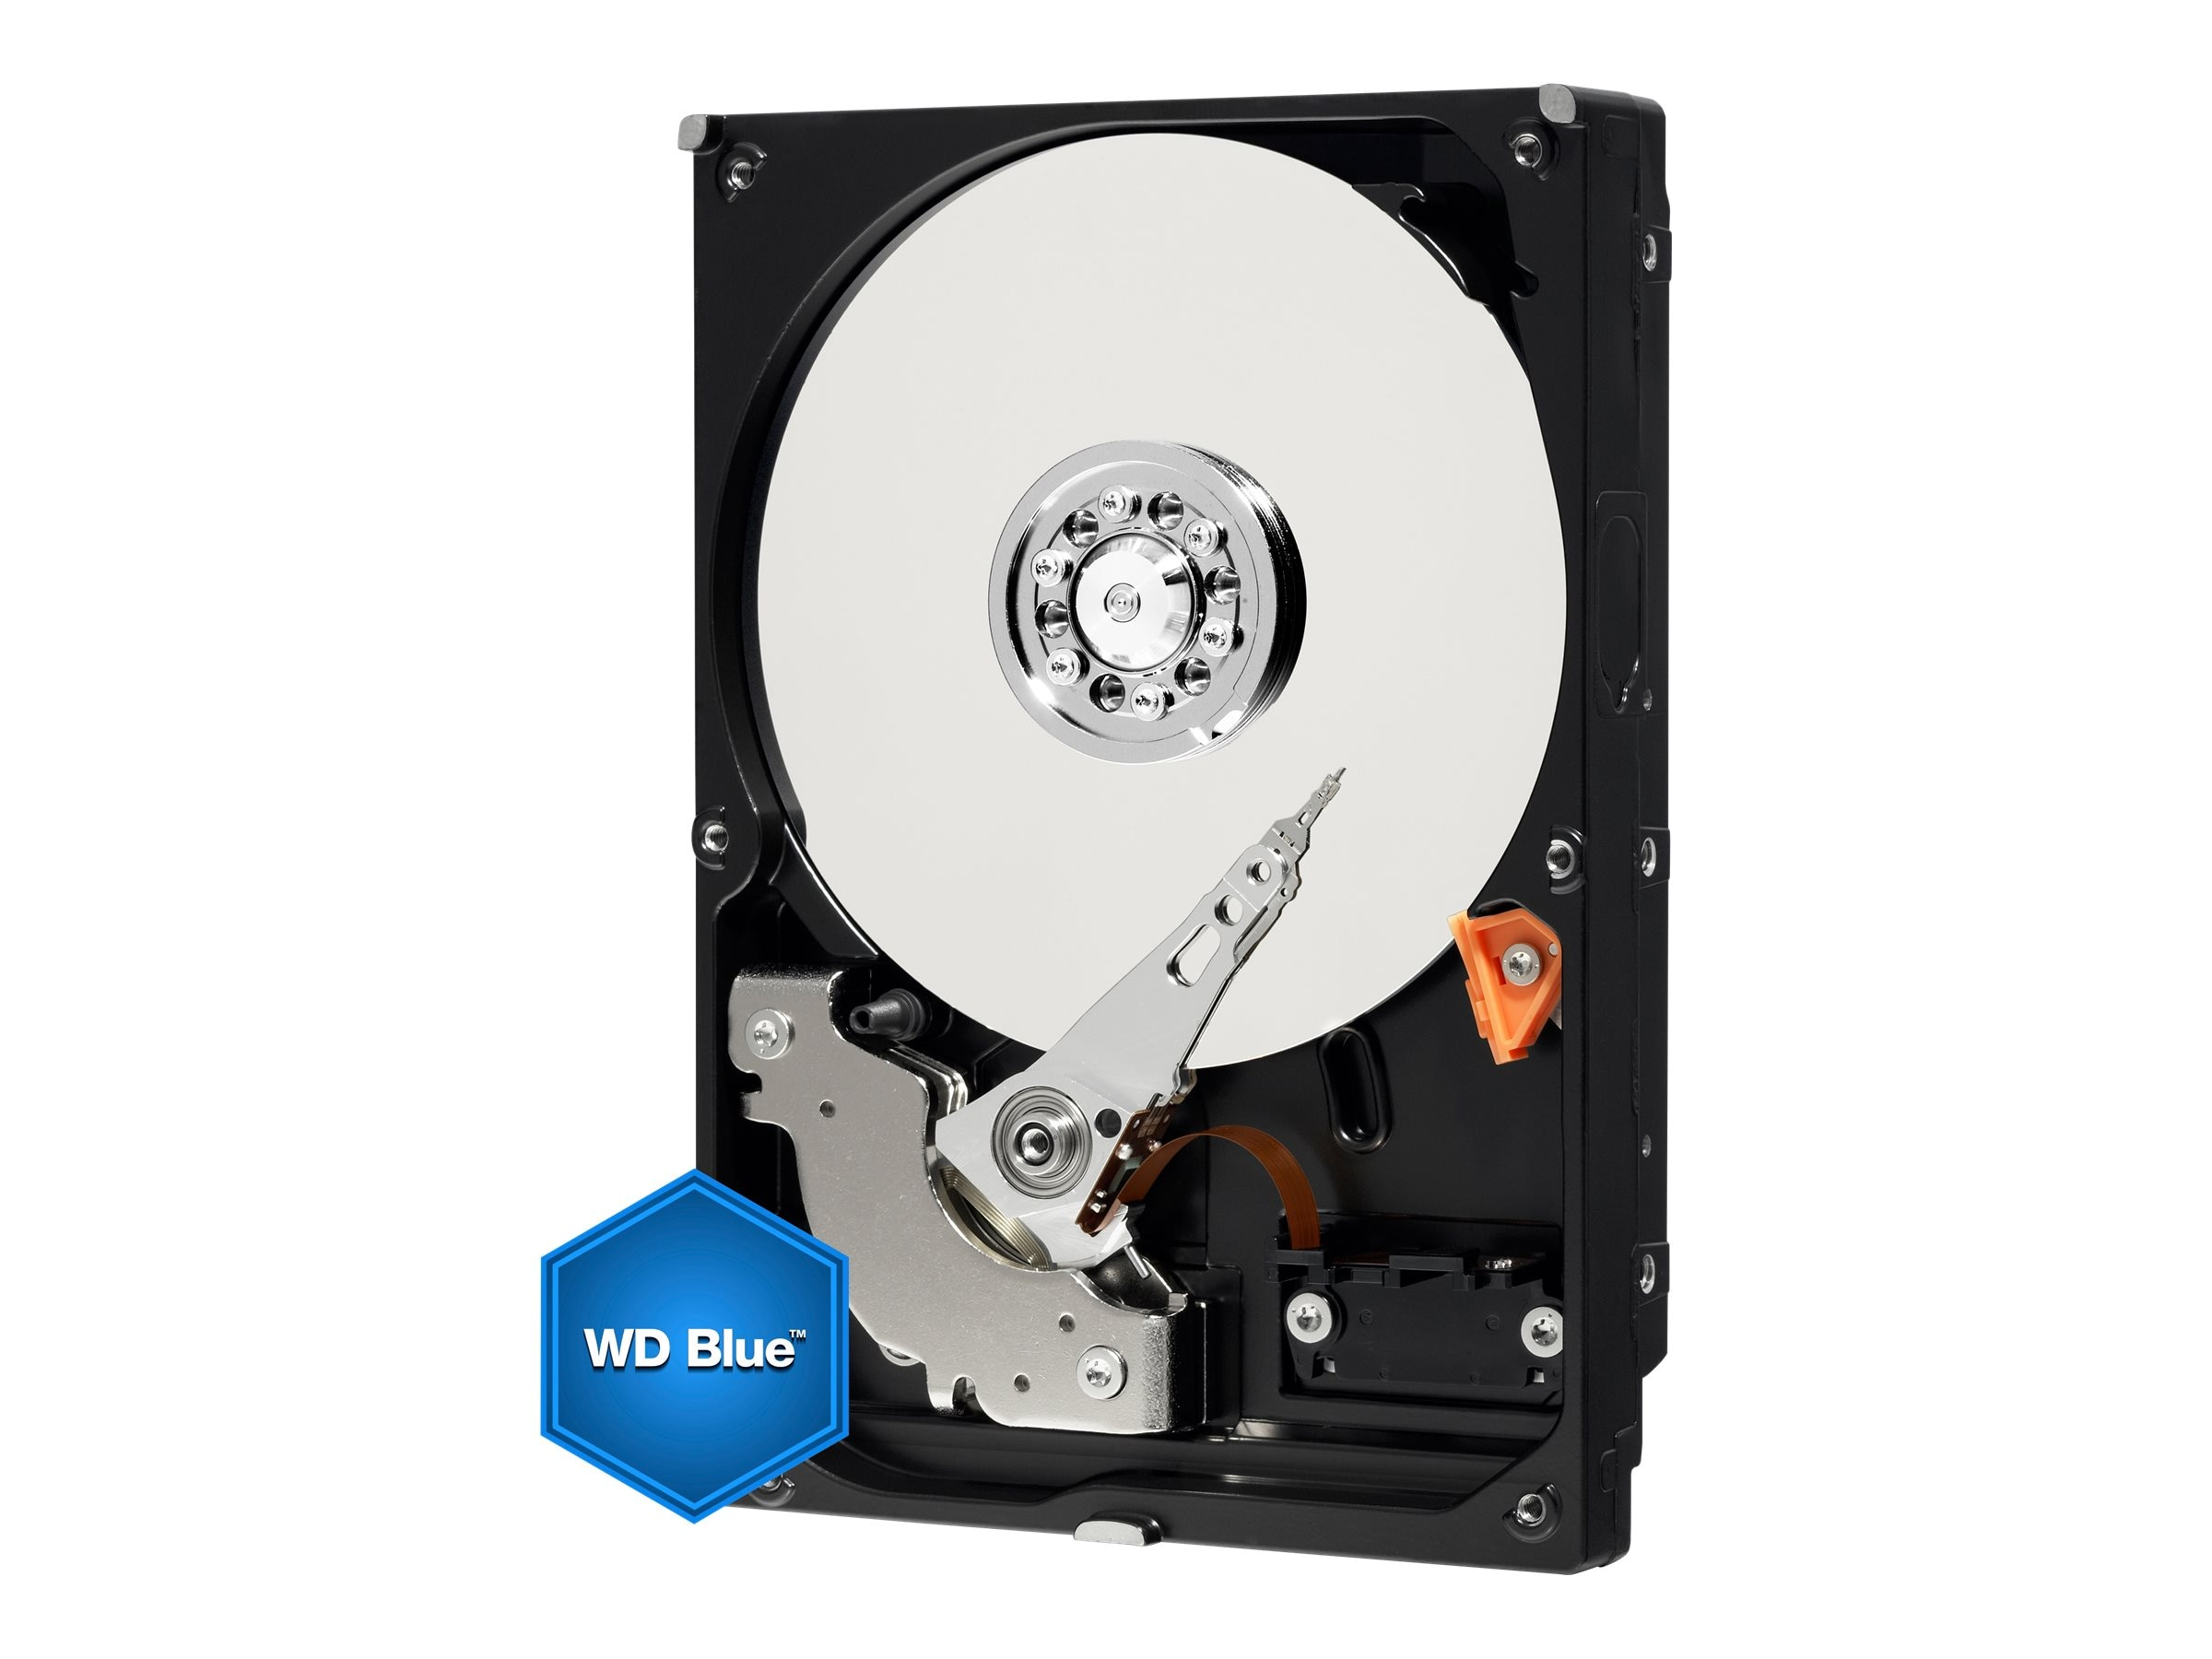 WD 500GB WD Blue SATA 6Gb s 7.2K RPM 3.5 Internal Hard Drive - 32MB Cache